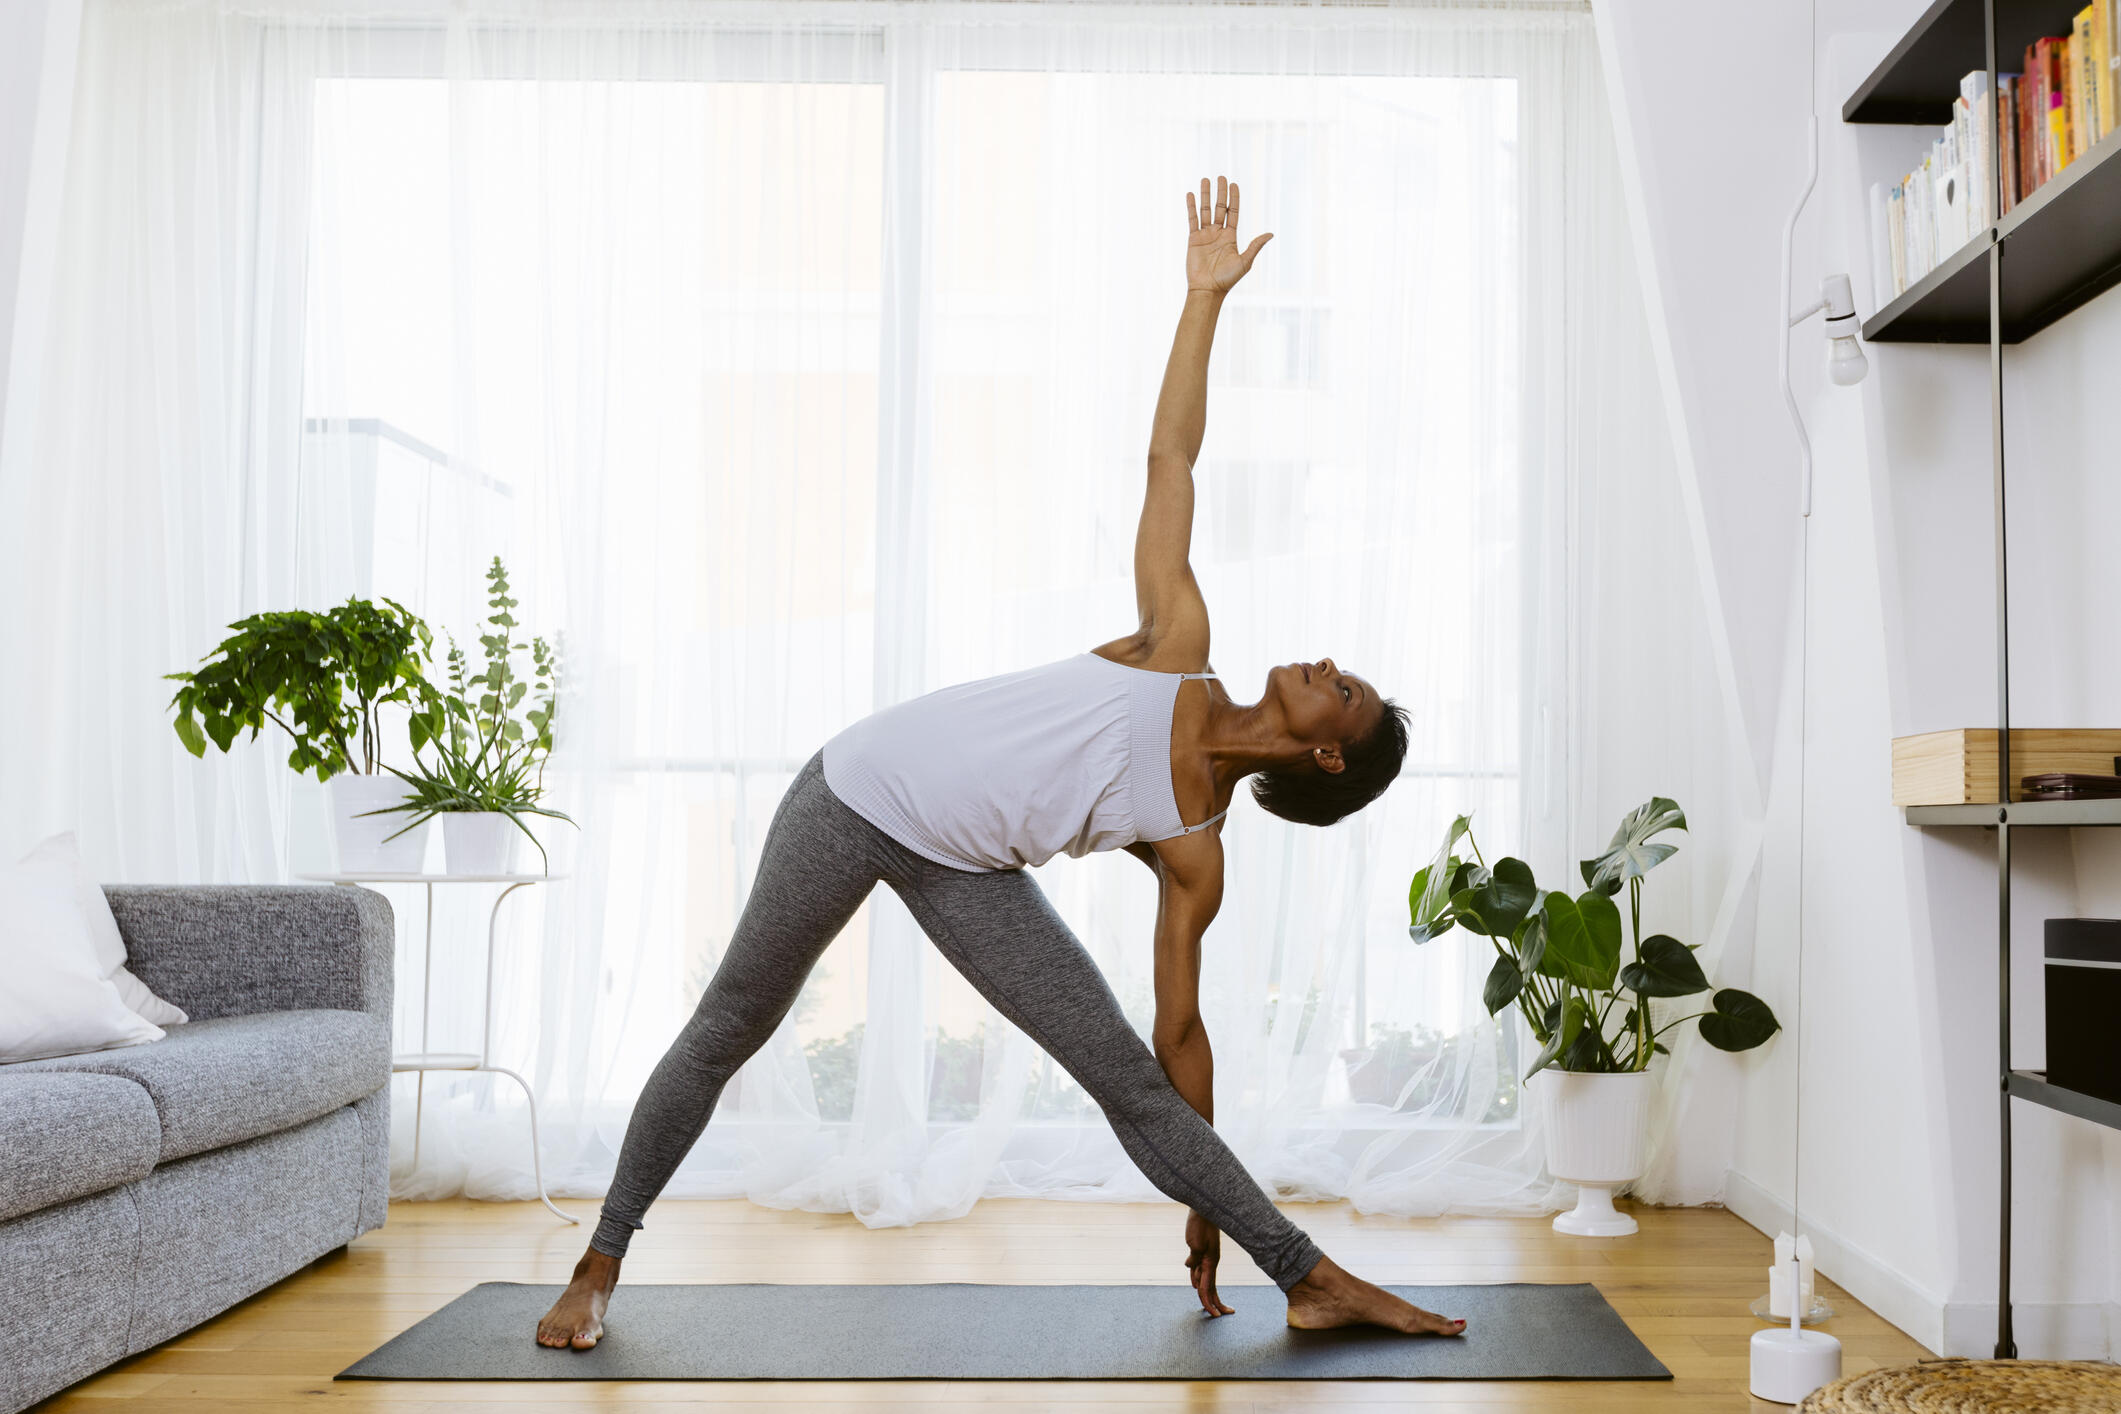 A woman doing yoga in the living room gentle exercise